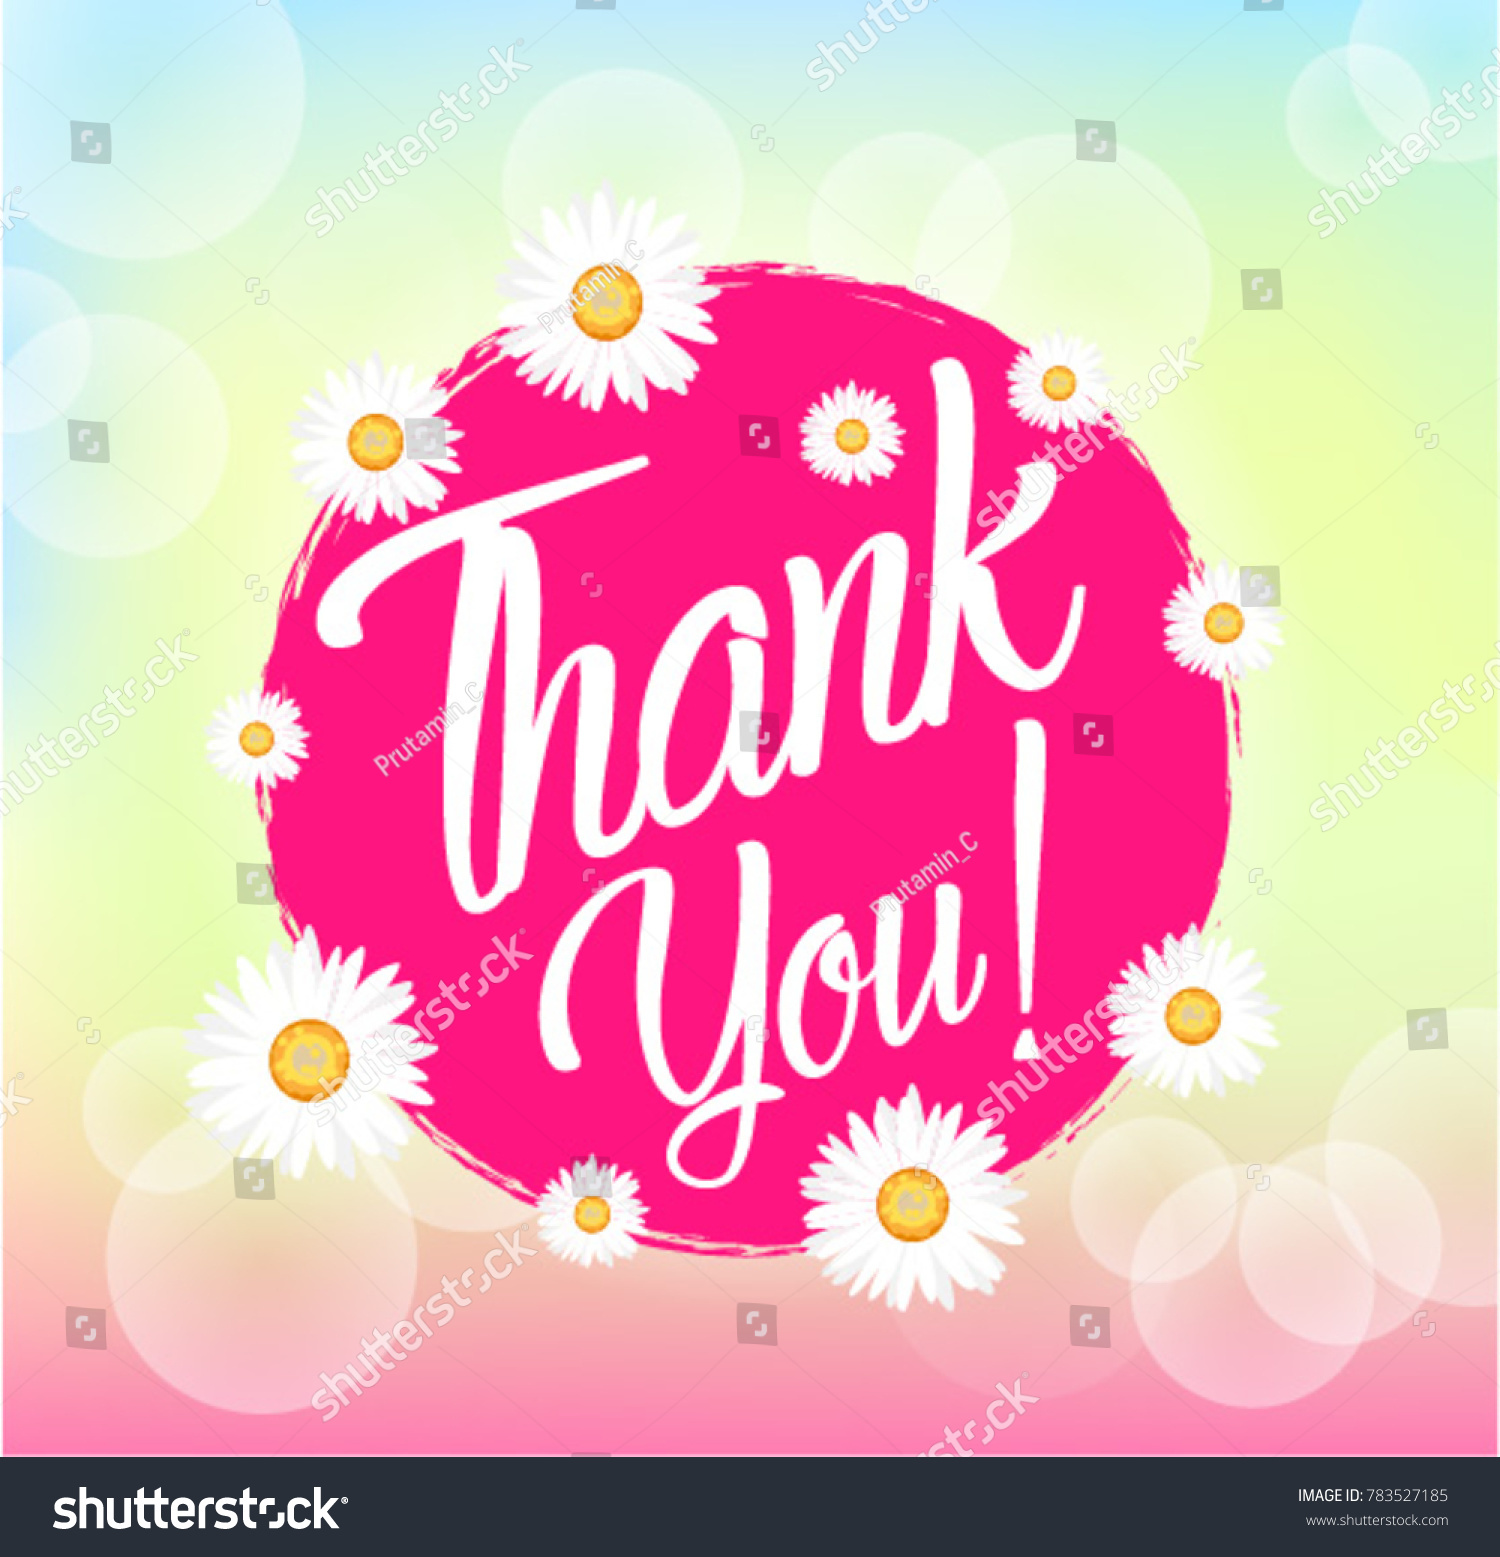 Thank you beautiful greeting card bunch stock vector 783527185 thank you beautiful greeting card with bunch flowers background kristyandbryce Choice Image